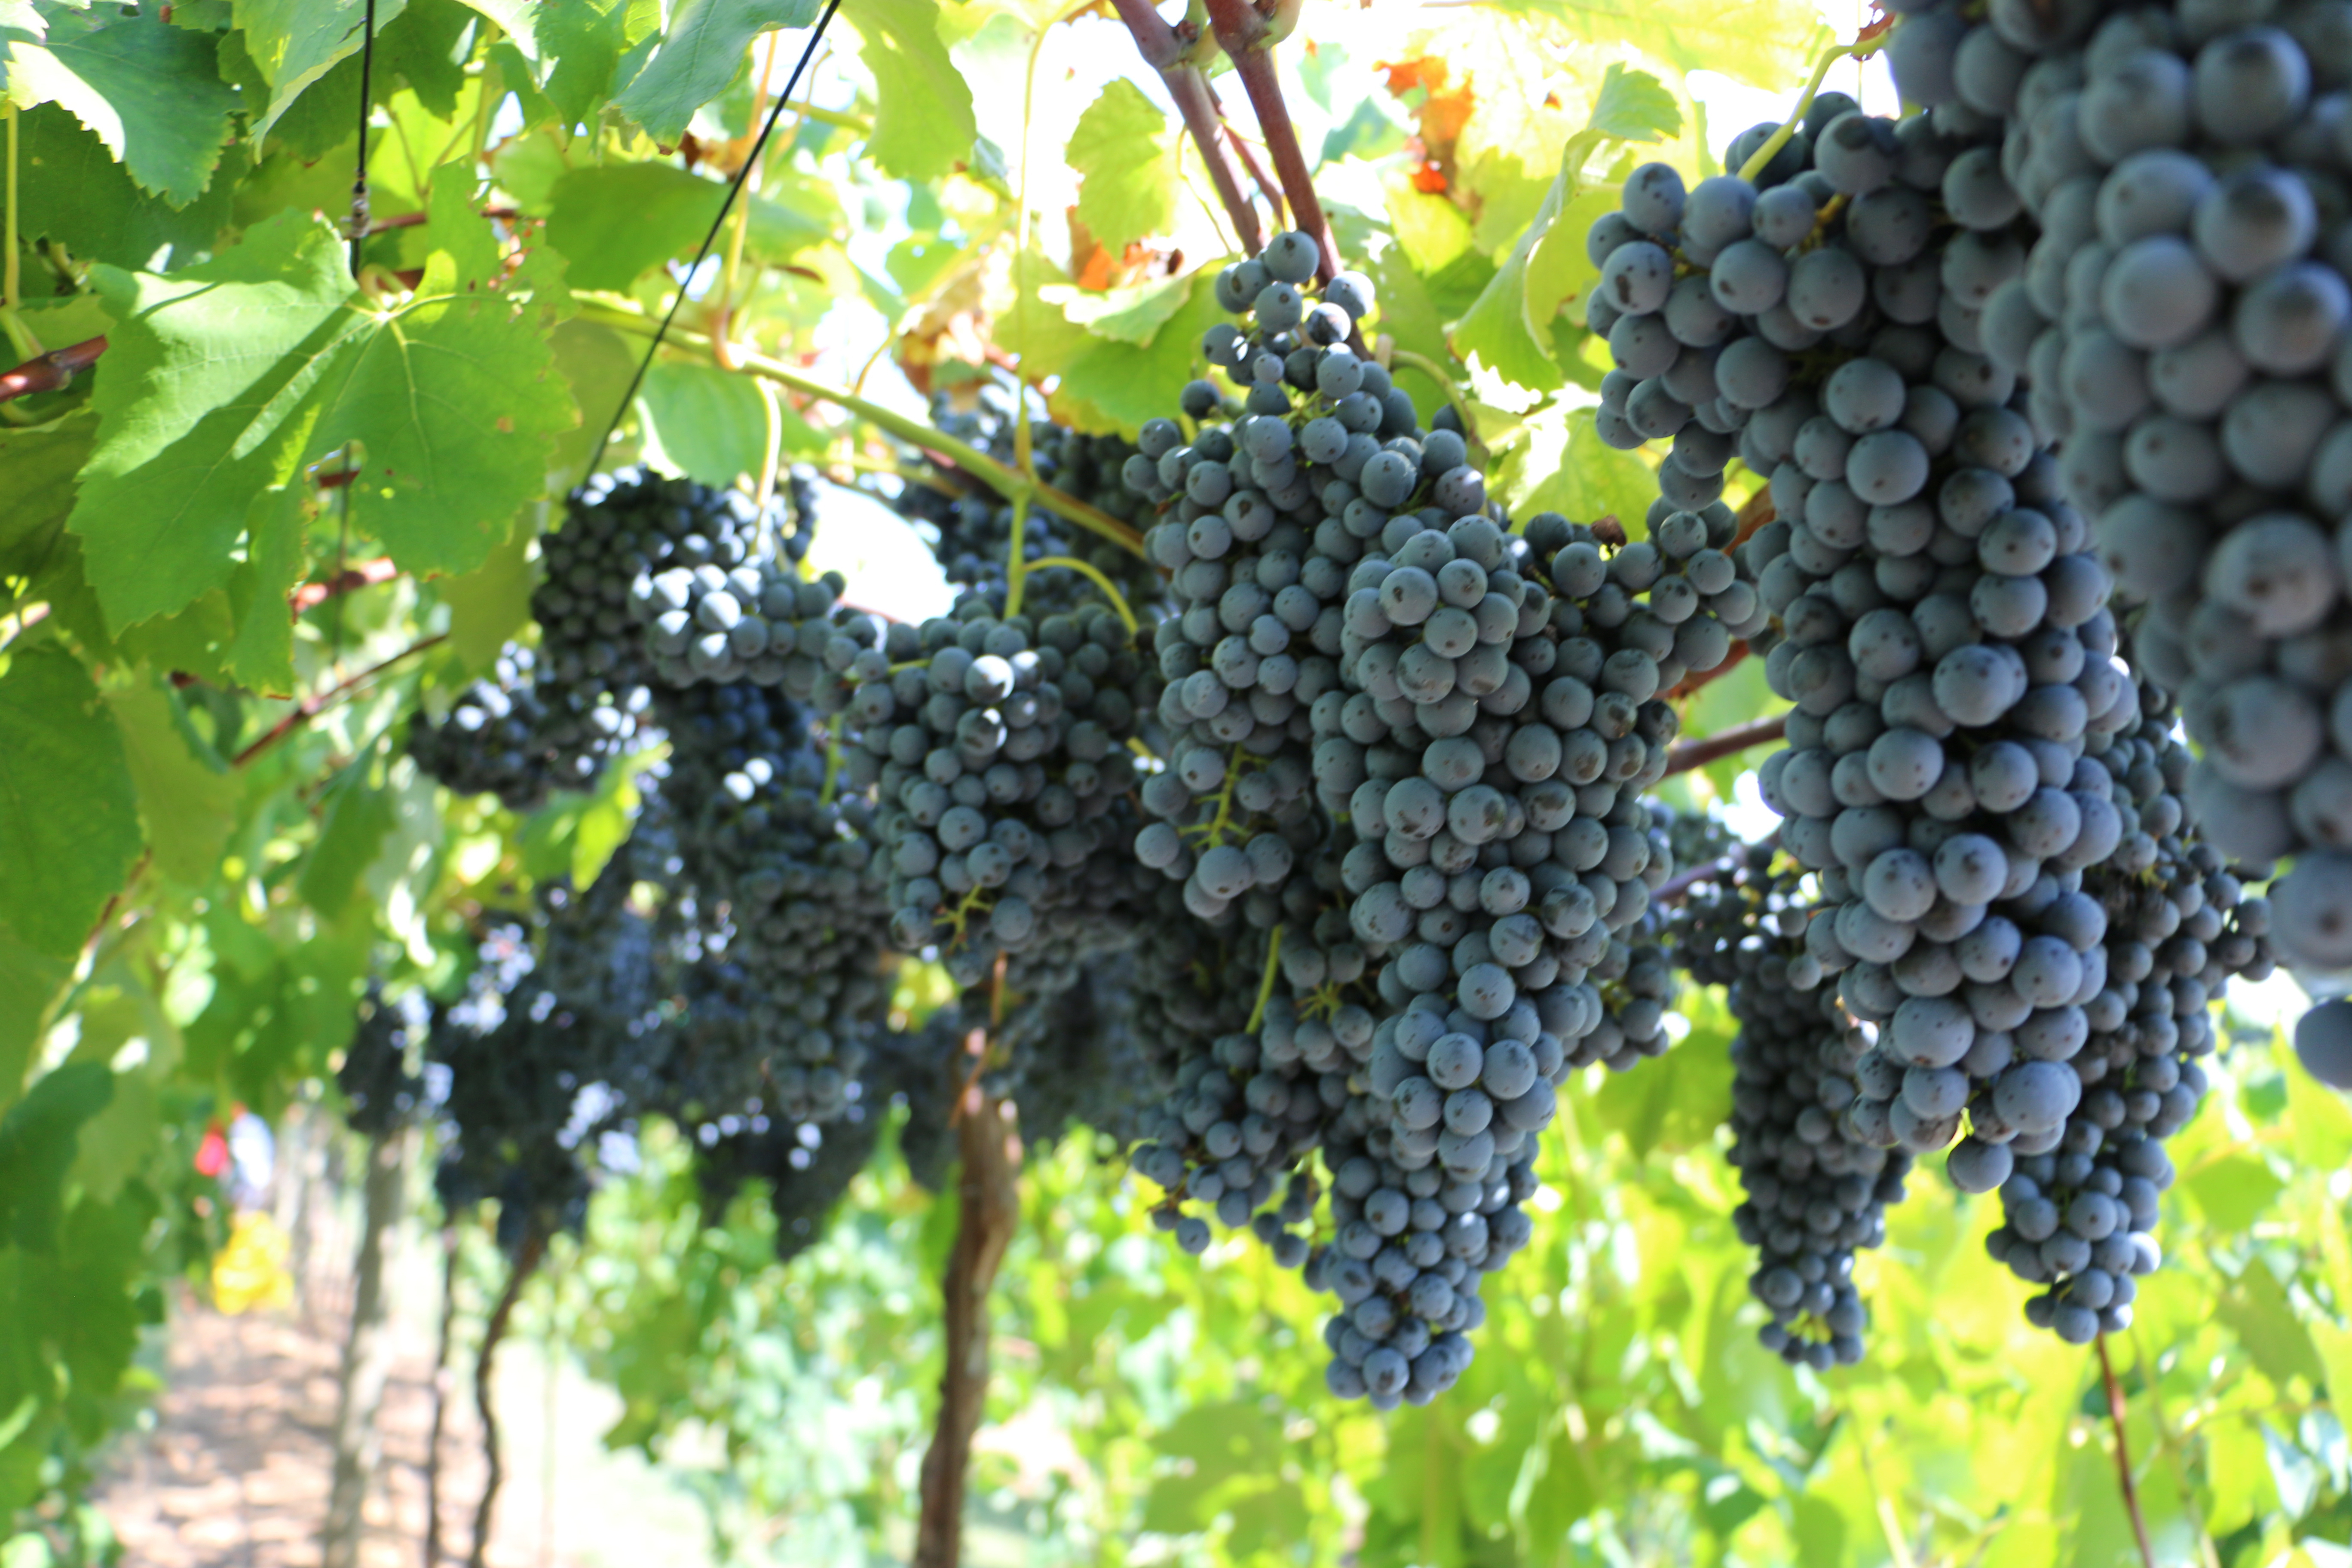 Early infections of downy mildew rot the fruit directly, whereas leaf infections result in defoliation — reducing photosynthesis and resulting in poor quality fruit that would produce unpalatable wine.